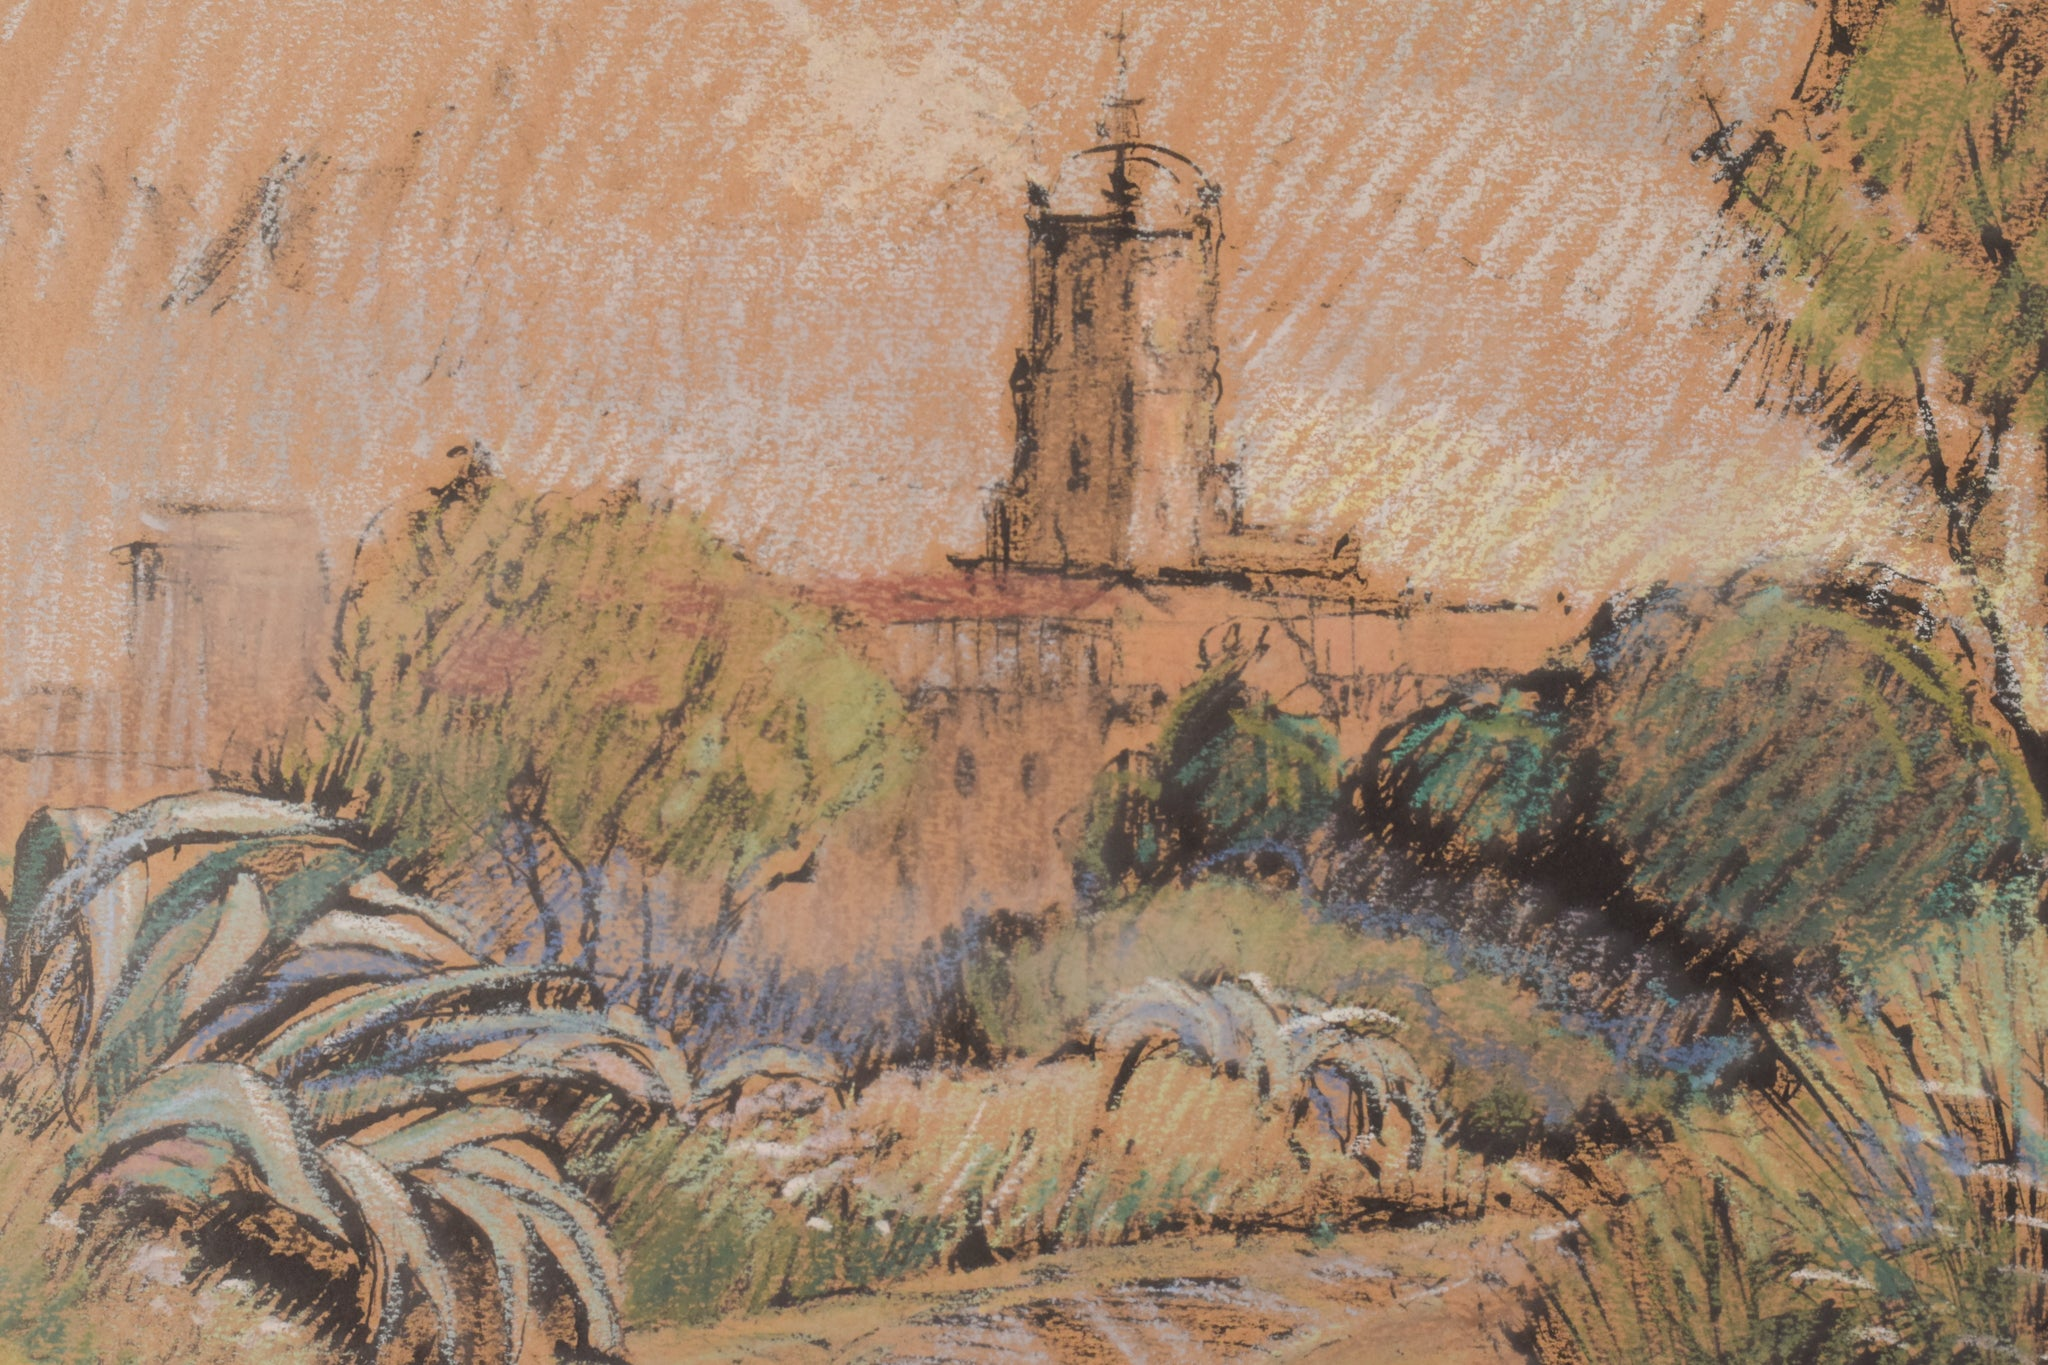 Framed Post Impressionist Sketch of a Church in a Landscape